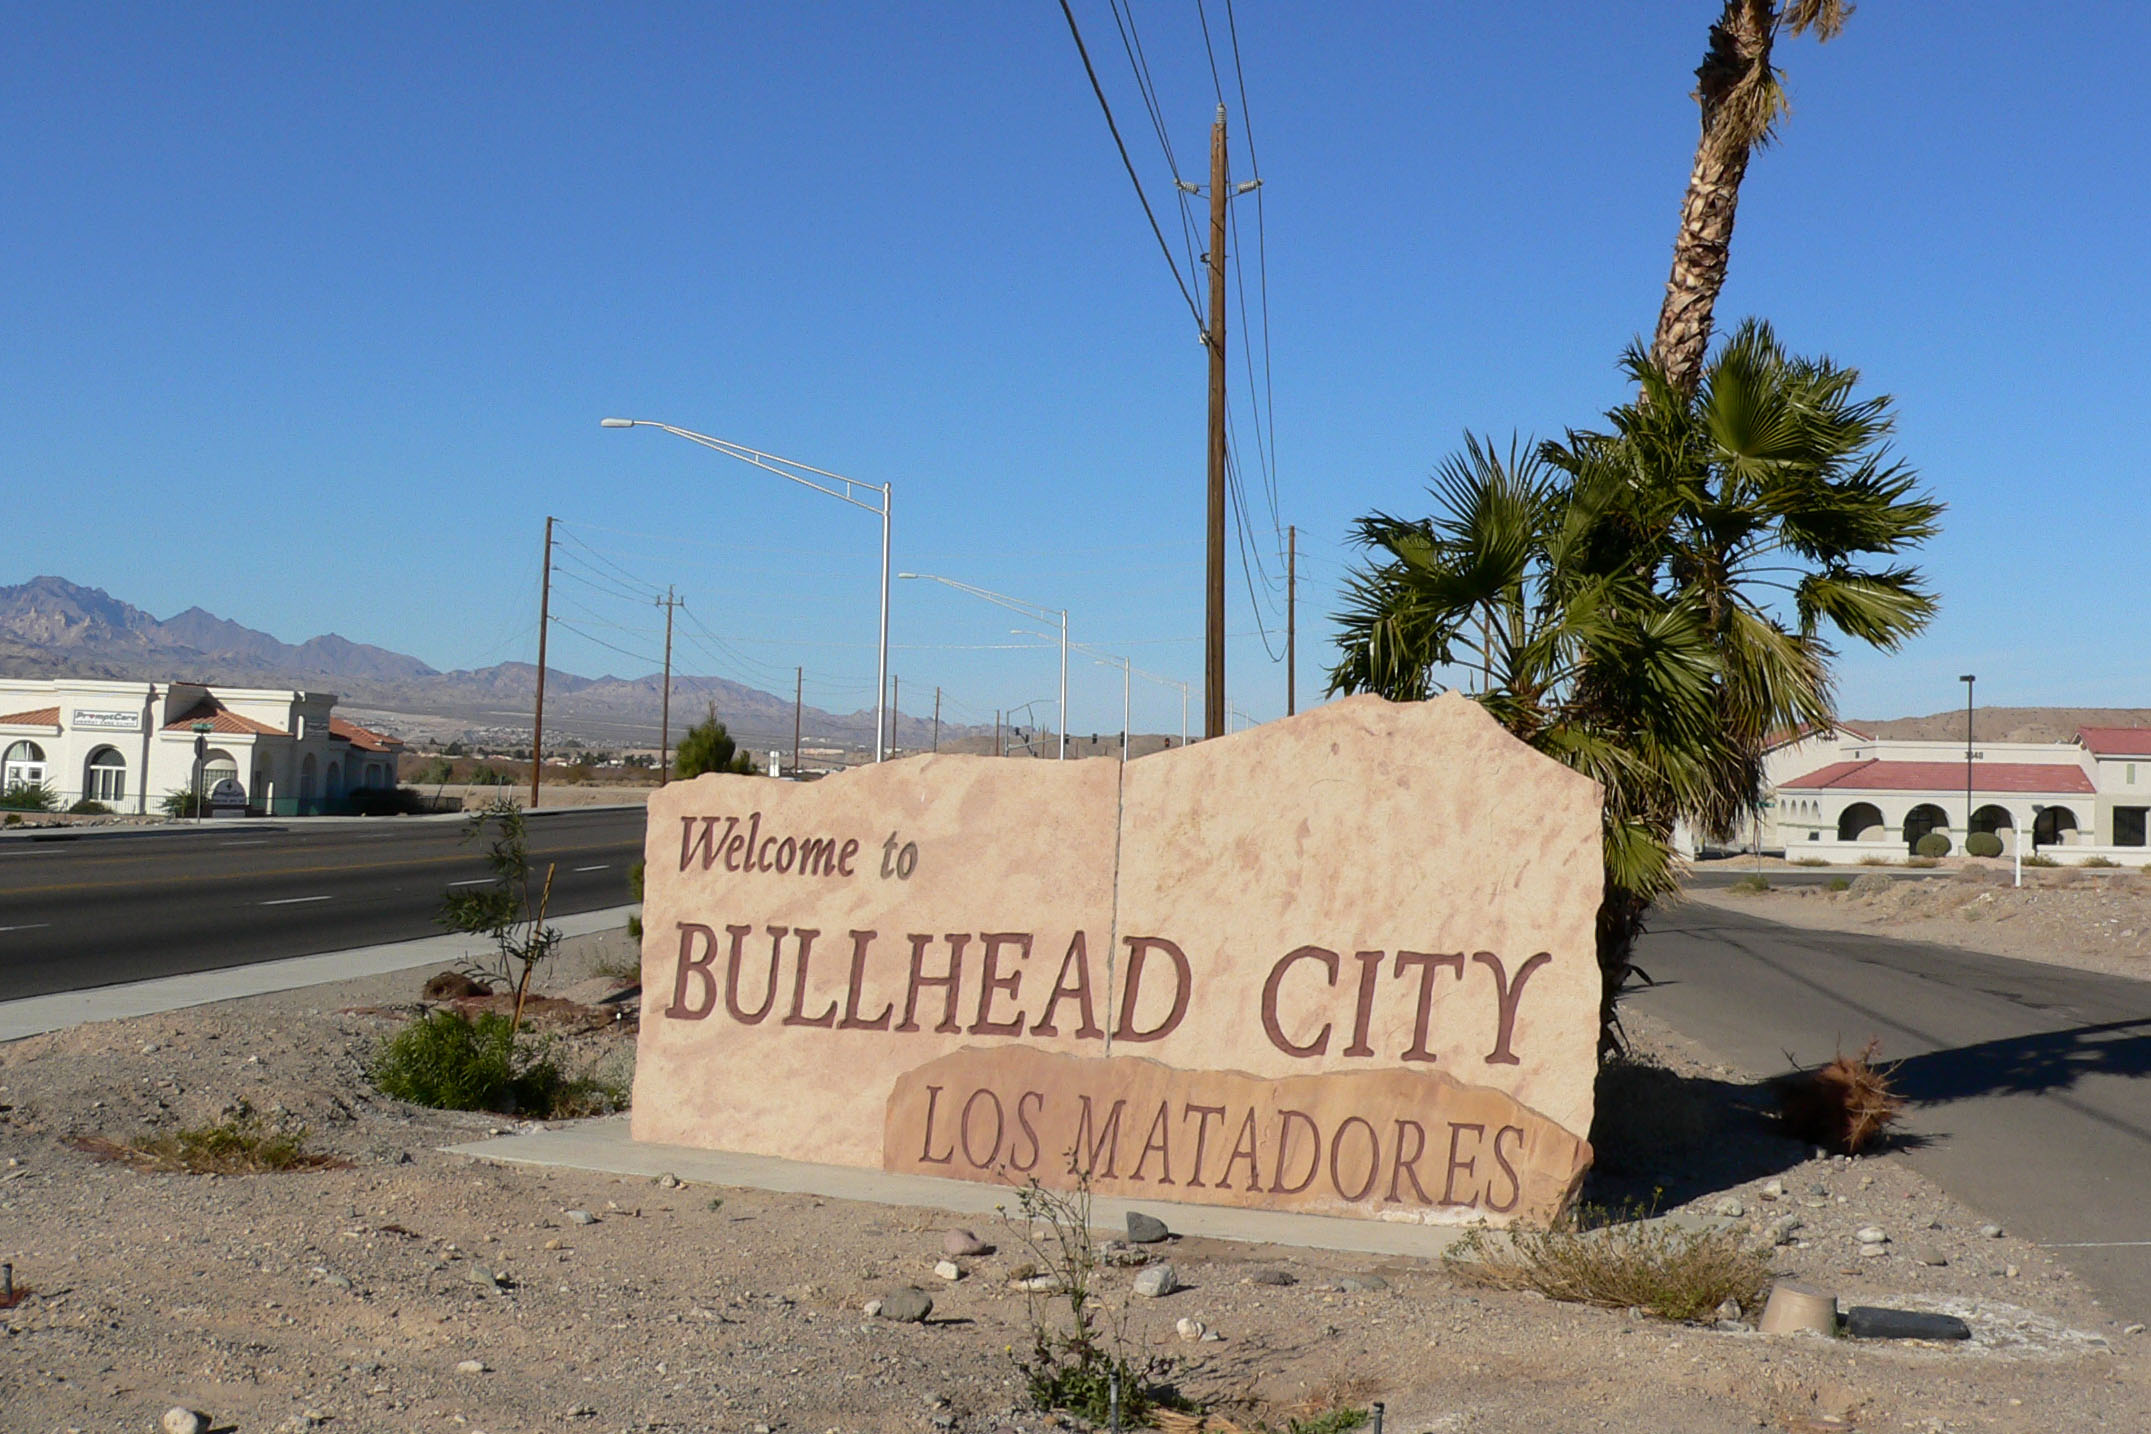 What to do in bullhead city